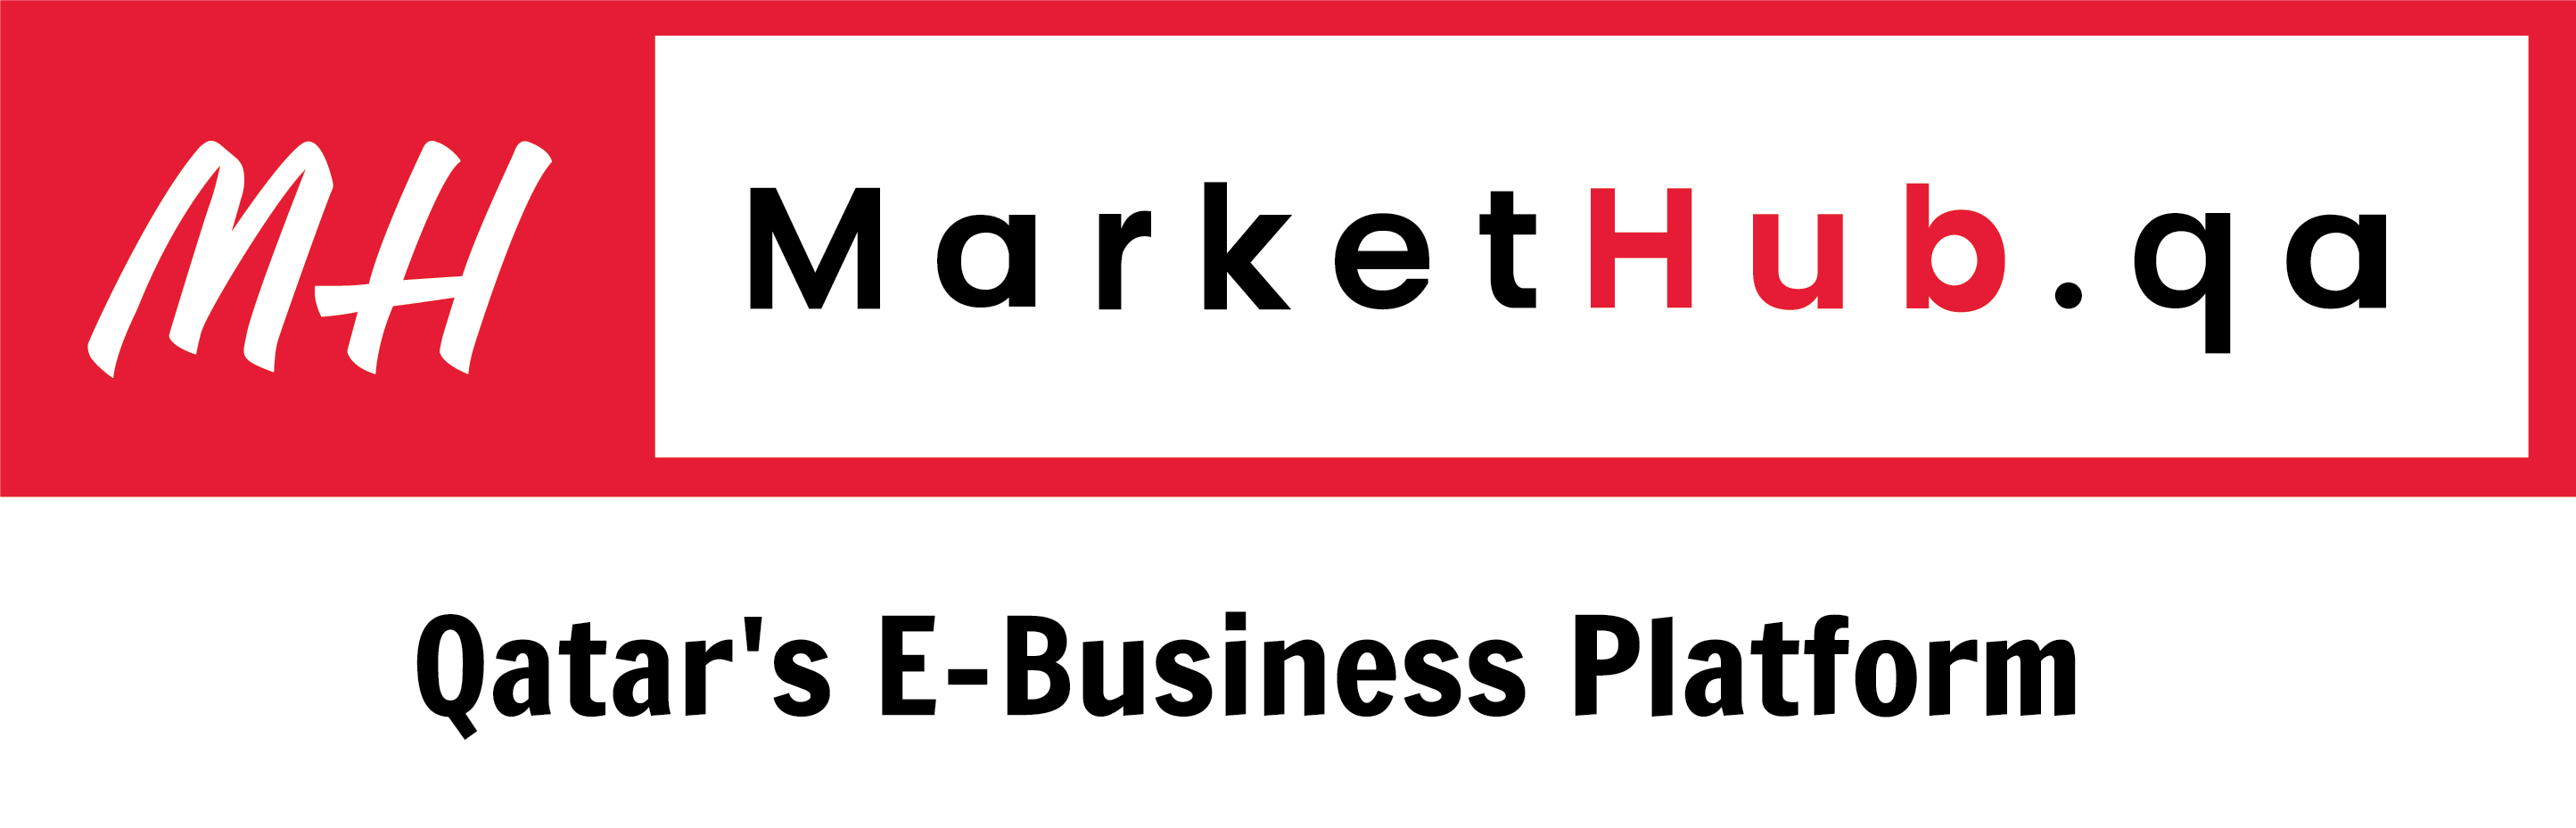 Market Hub Innovations